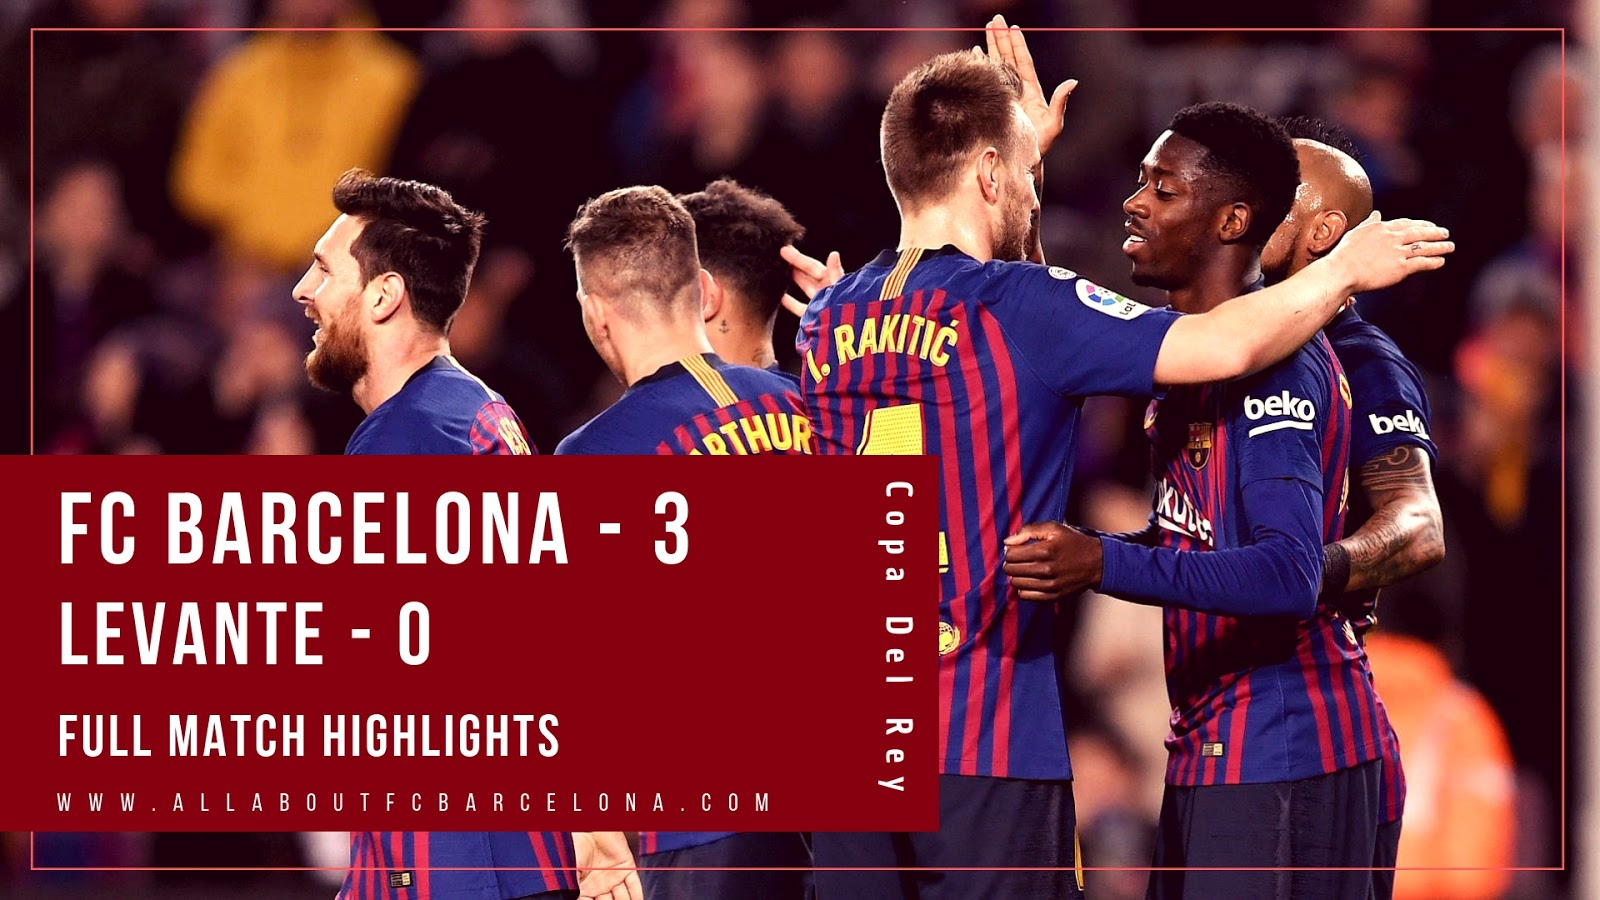 FC Barcelona vs Levante Highlights from Copa Del Rey, 2nd Leg Match at Camp Nou